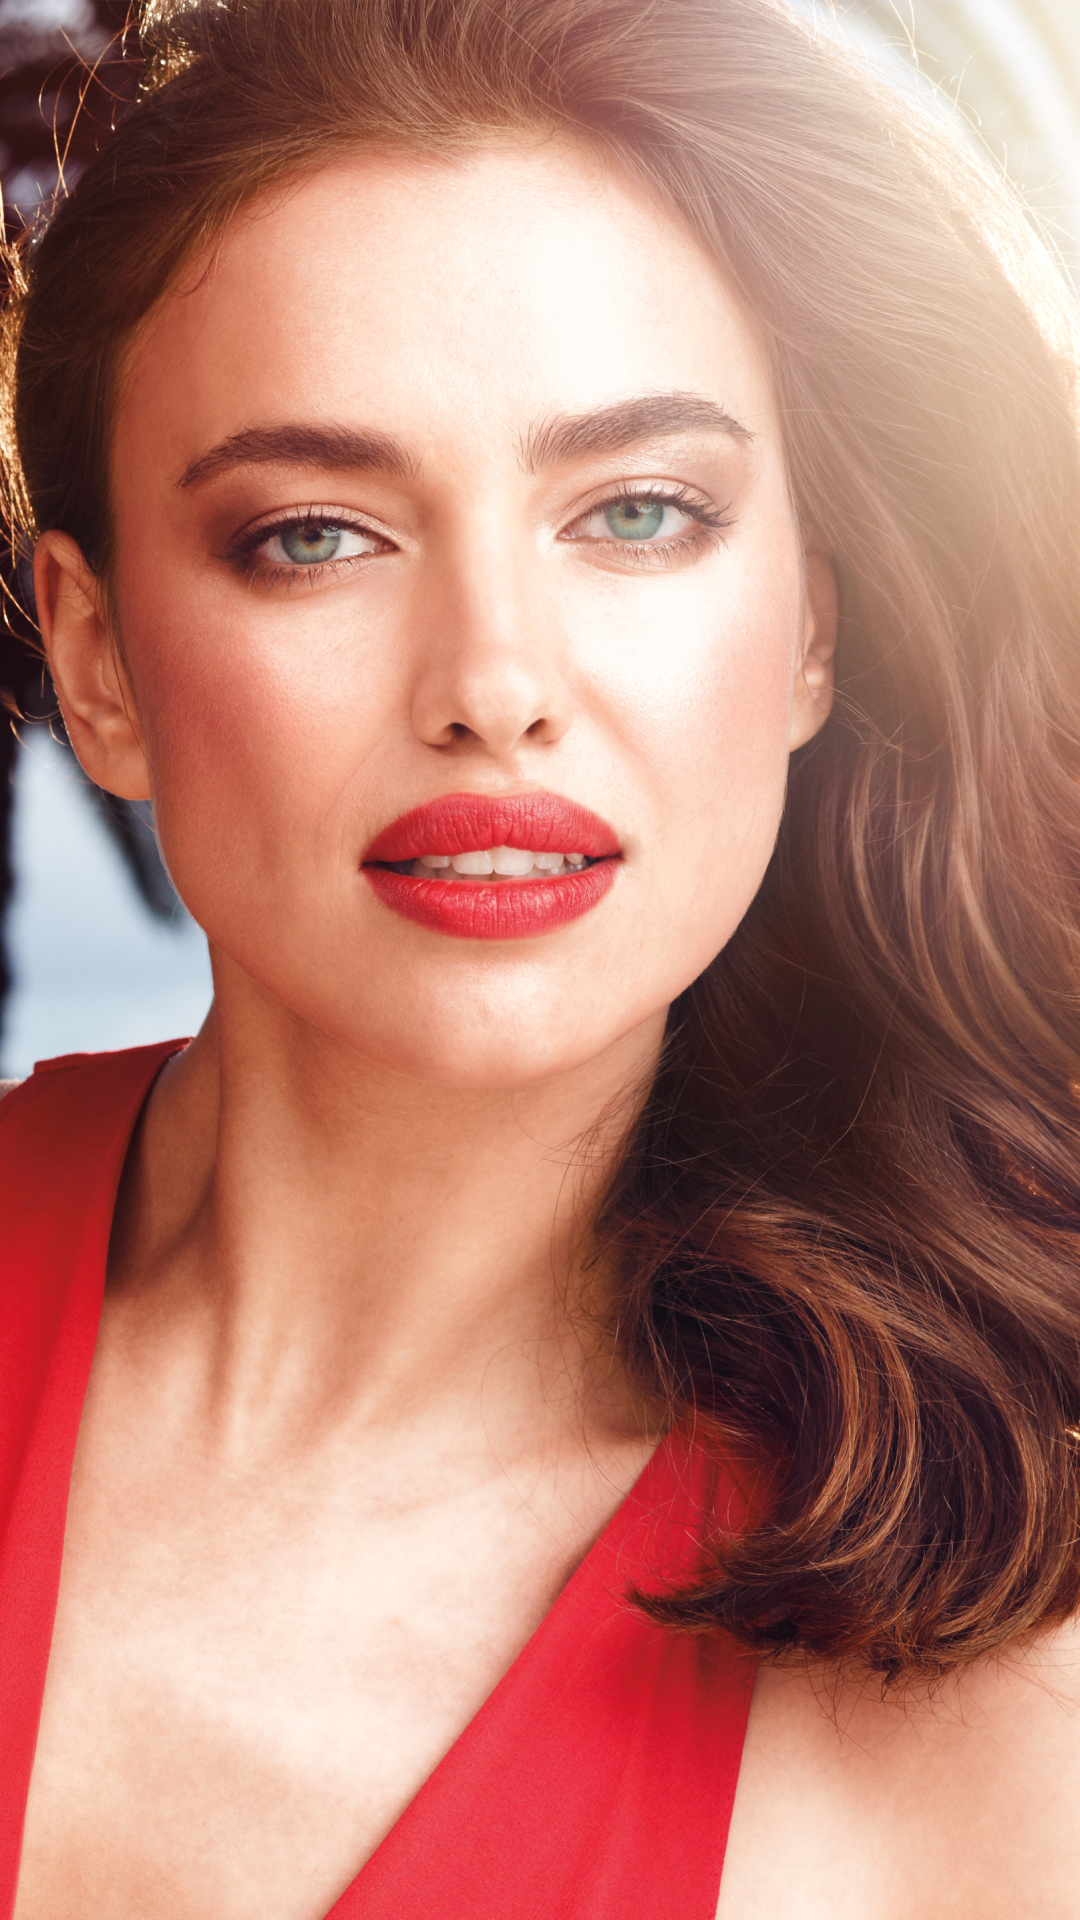 celebrity/irina shayk (1080x1920) wallpaper id: 659299 - mobile abyss